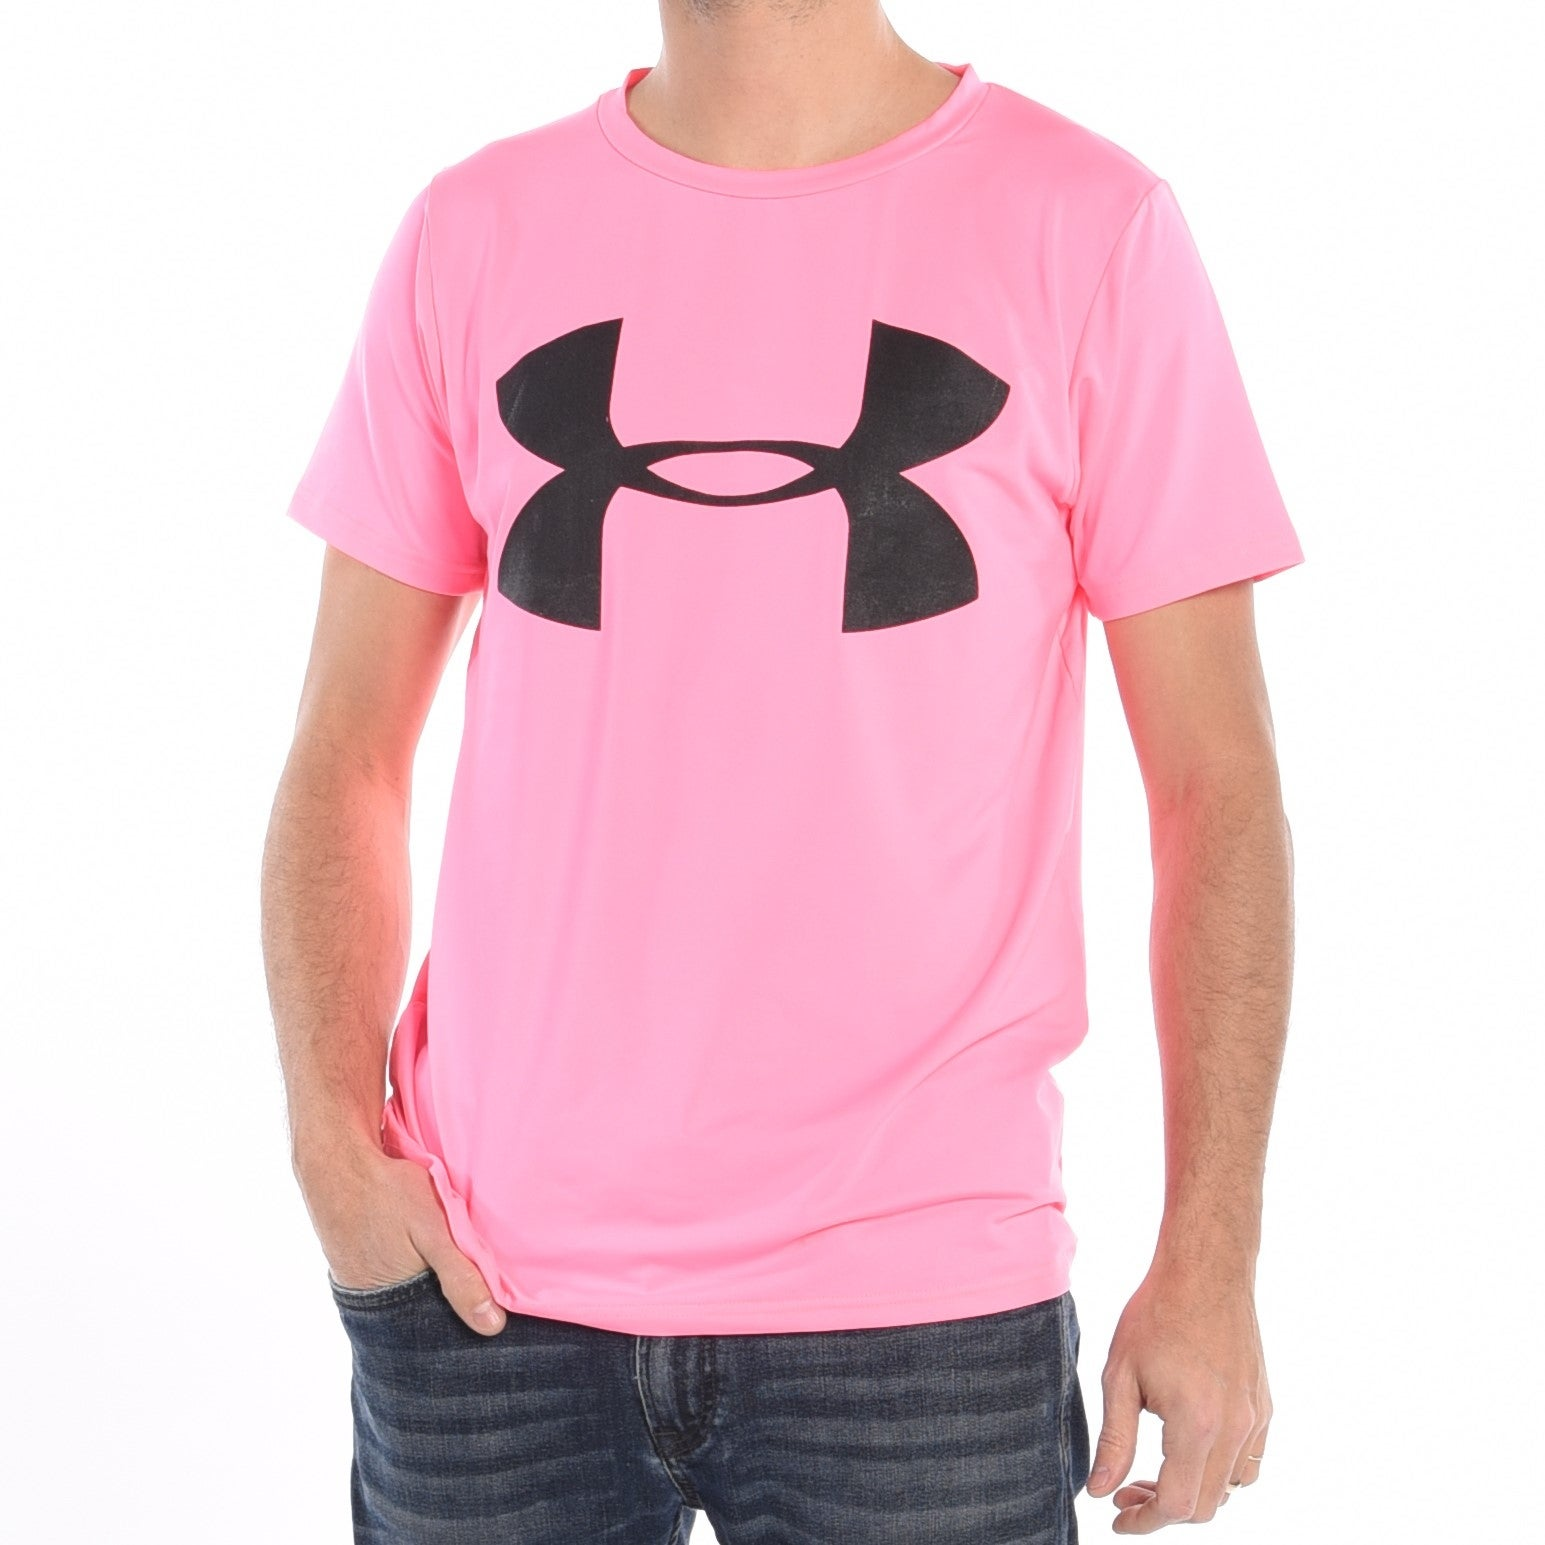 a73f6493b7be Shop Men'S Workout T-Shirt In Pink - Free Shipping Today - Overstock.com -  17129859